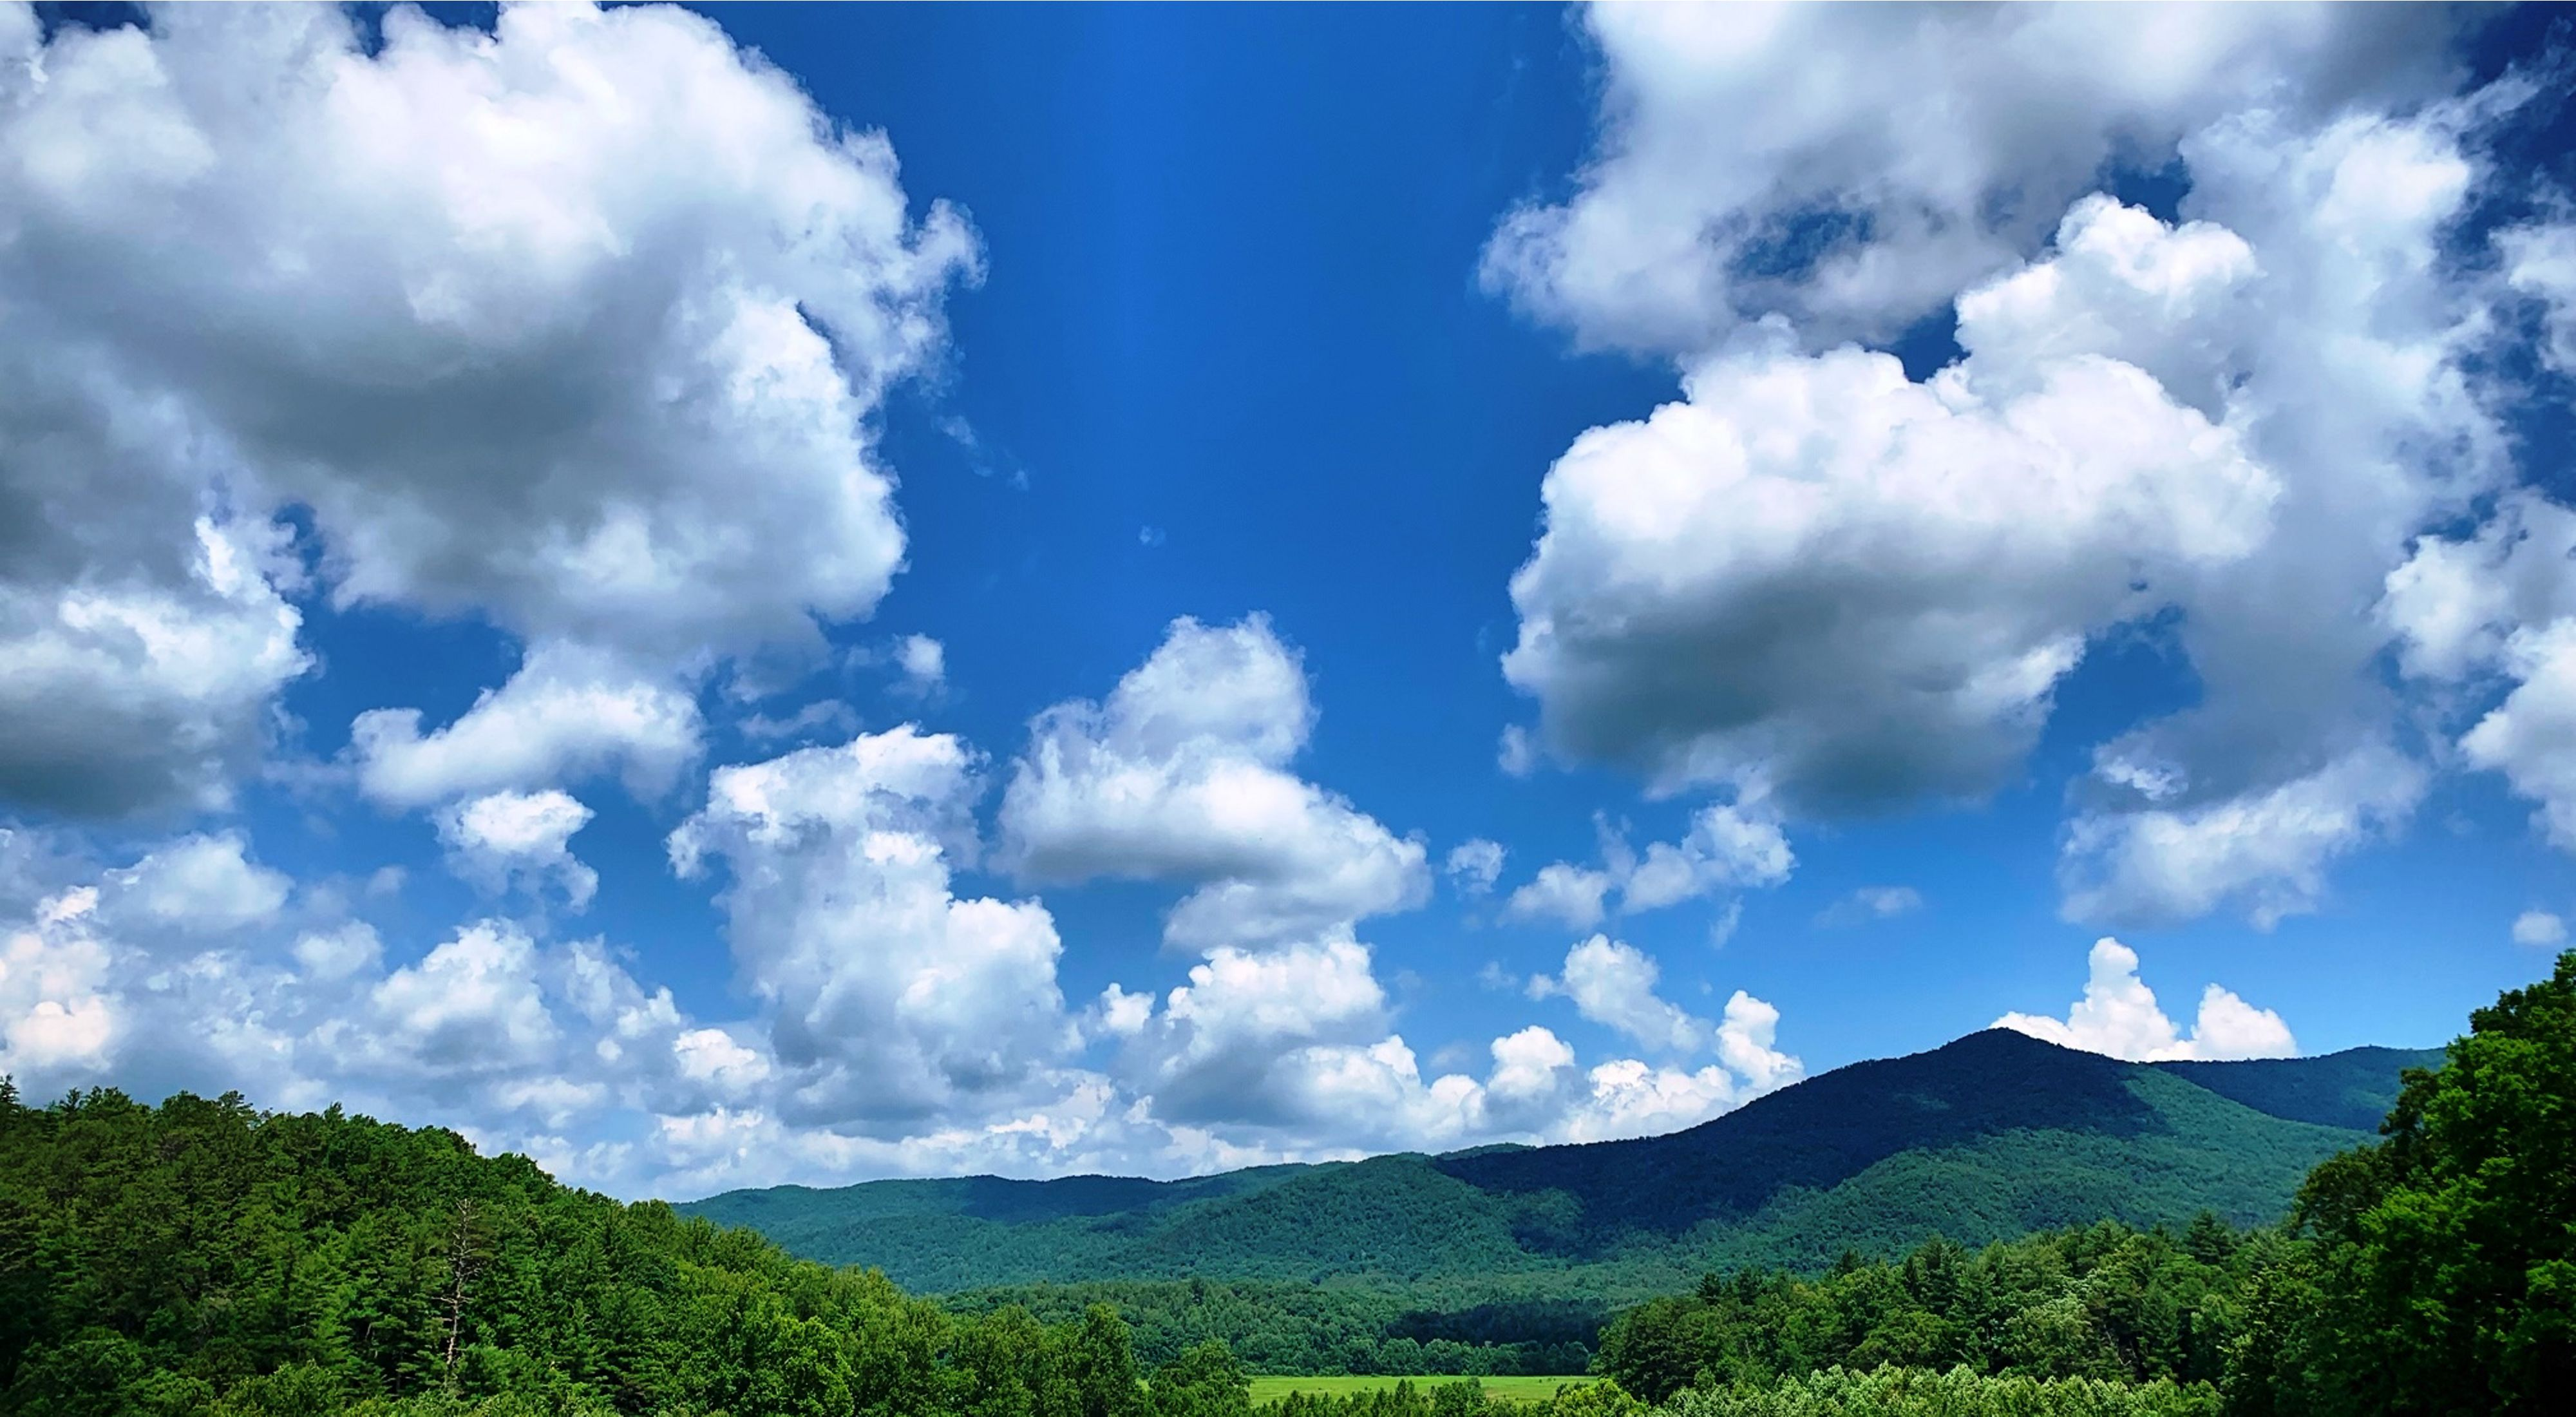 A blue sky and white clouds frame a mountain valley.